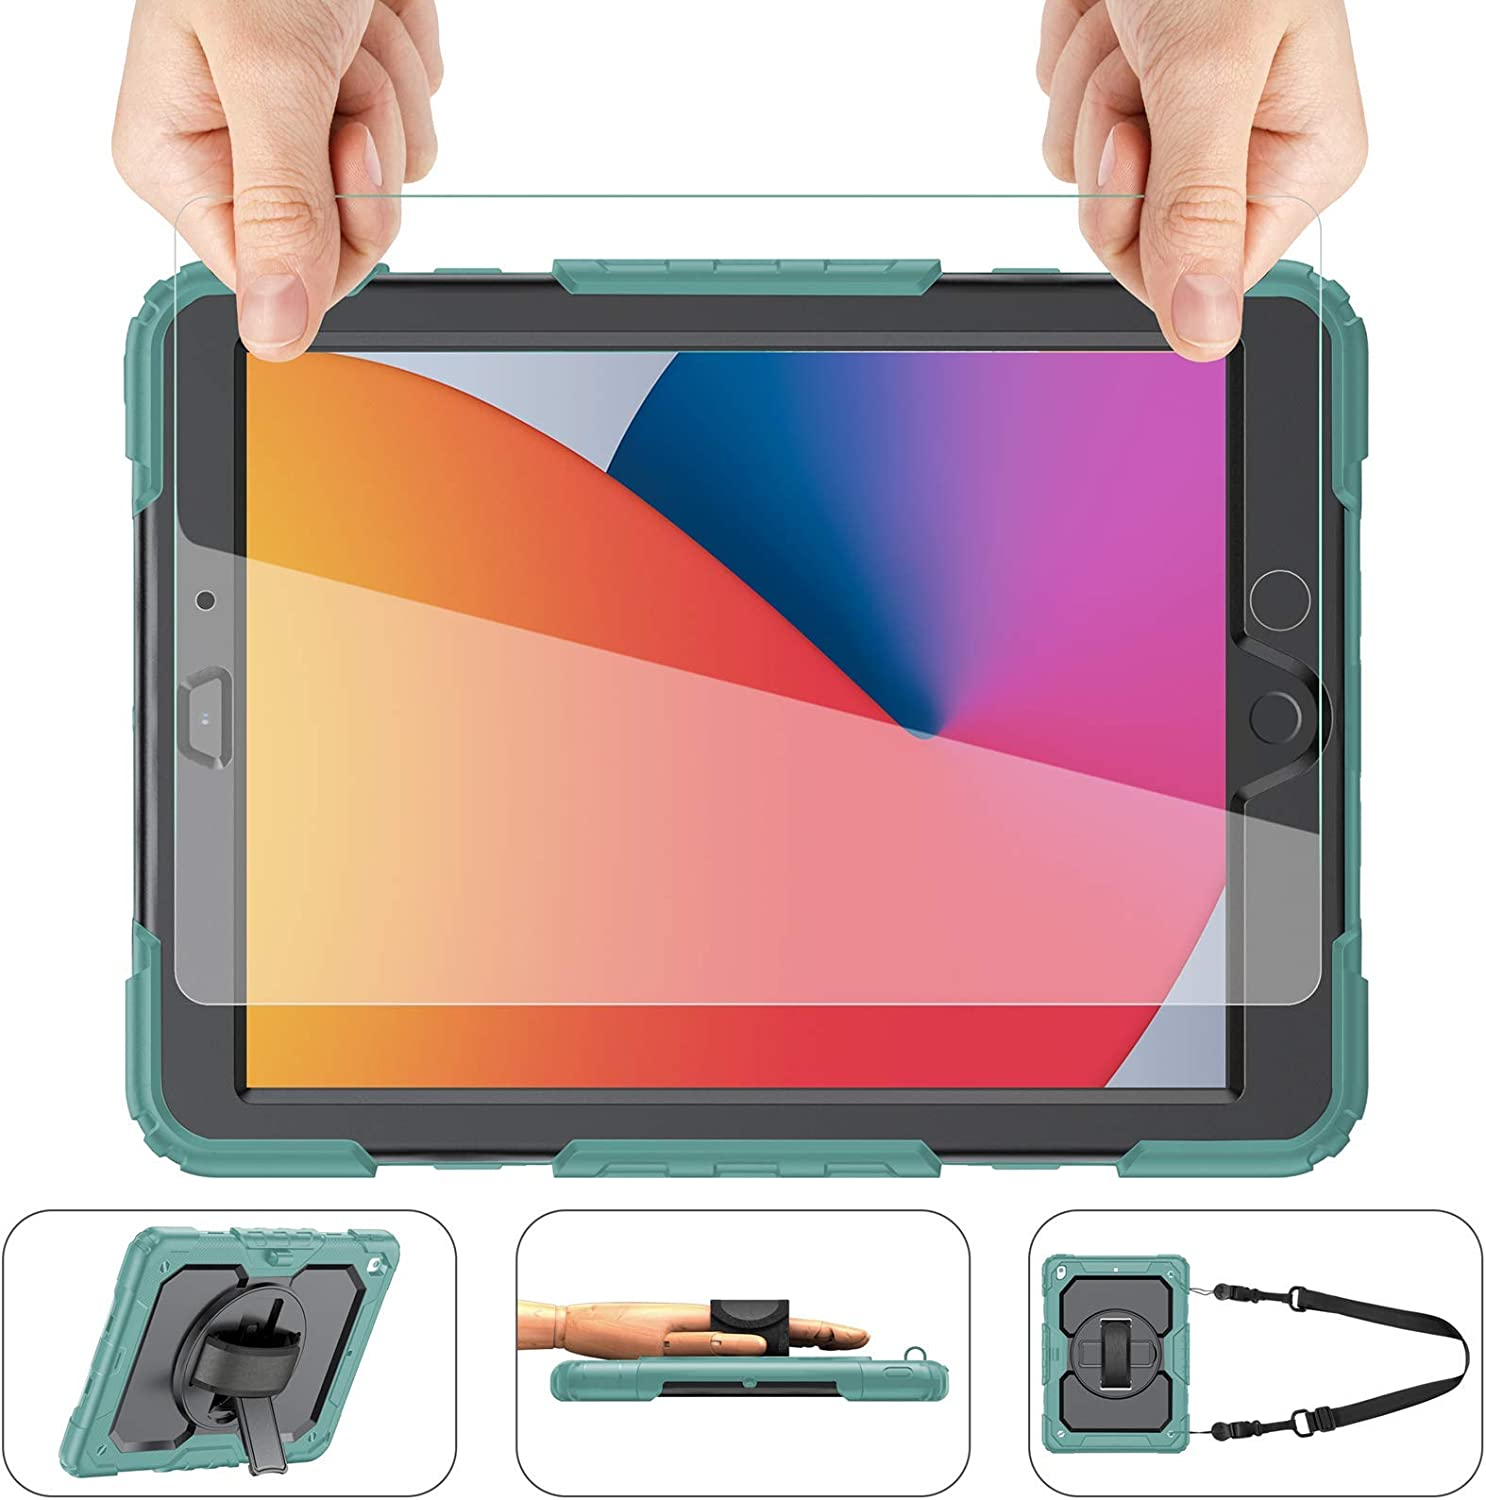 iPad 8th/7th Generation Case, iPad 10.2 Case 2020/2019, [Shockproof] ambison Full Body Protective Case with 9H Screen Protector, Rotatable Kickstand & Hand Strap, Shoulder Strap (Teal & Black)